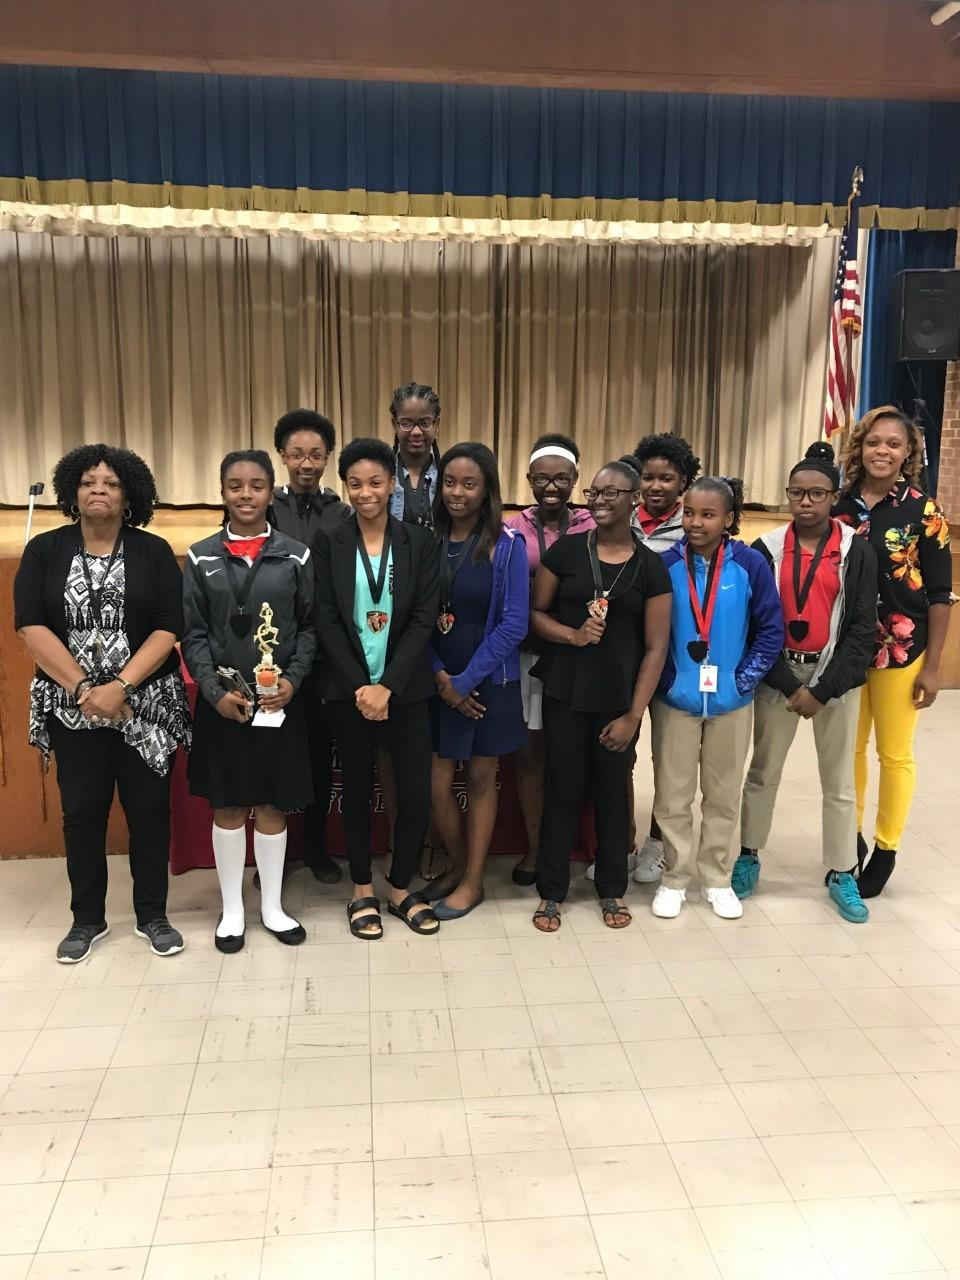 Baker Middle School Athletes in group photo at the 2017 Awards Banquet